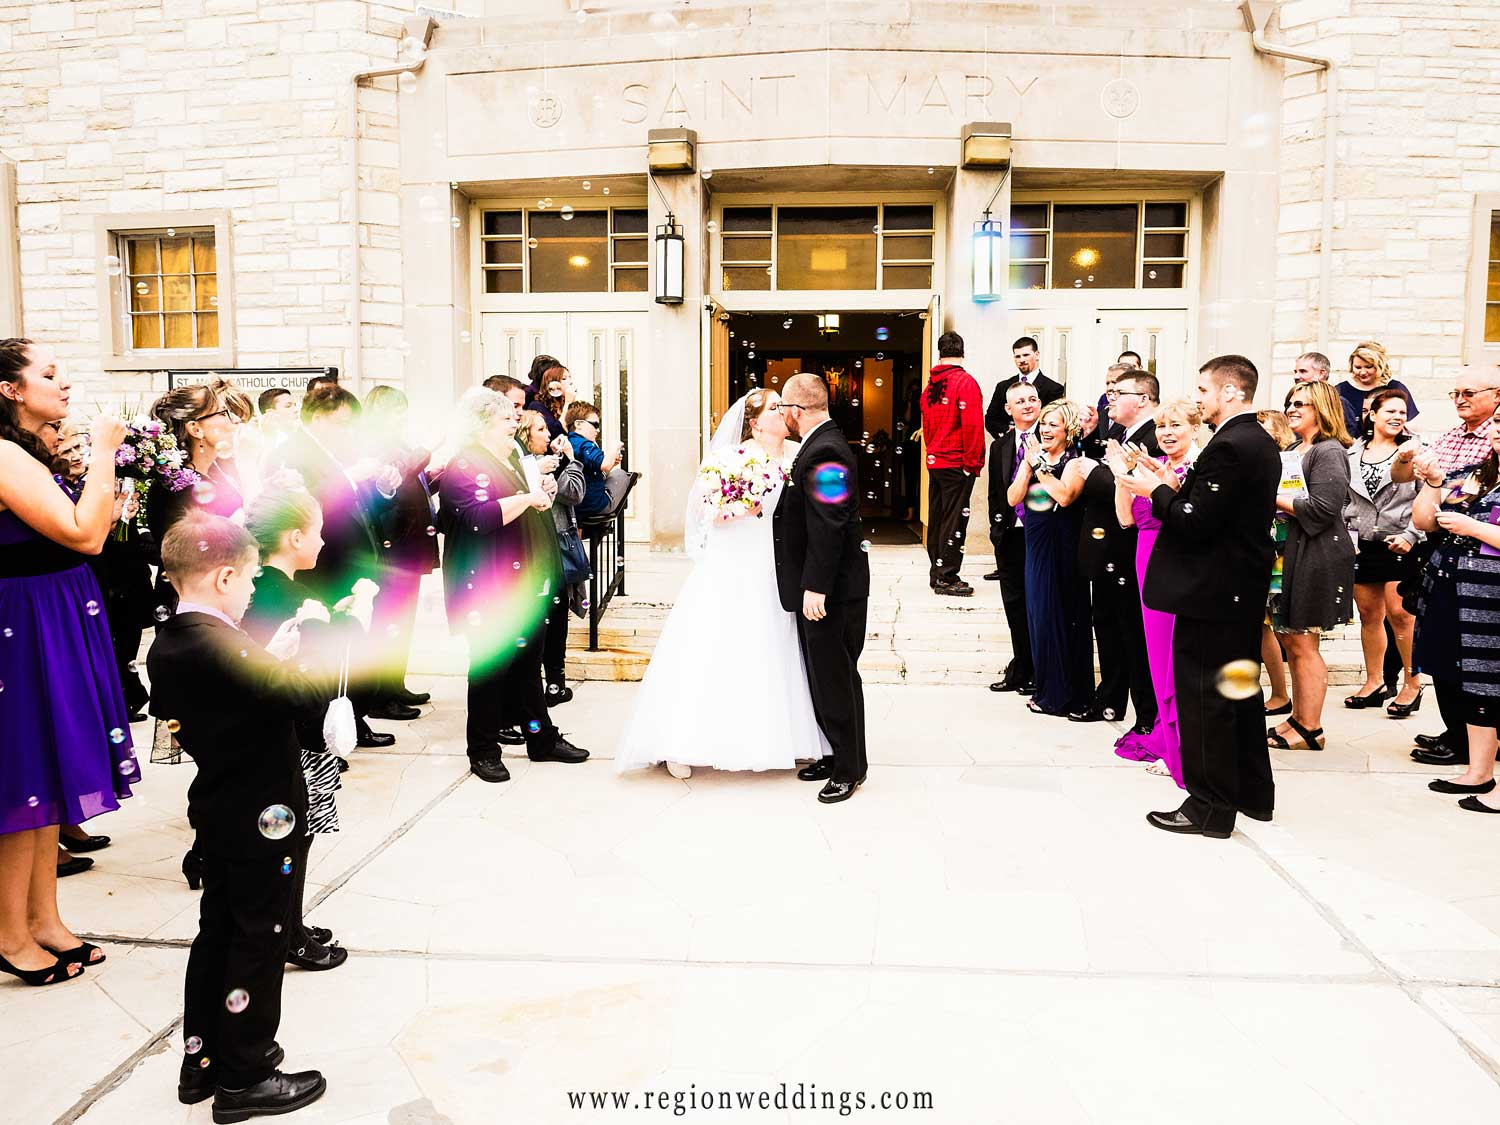 The newly married couple exits St. Mary's amid bubbles.